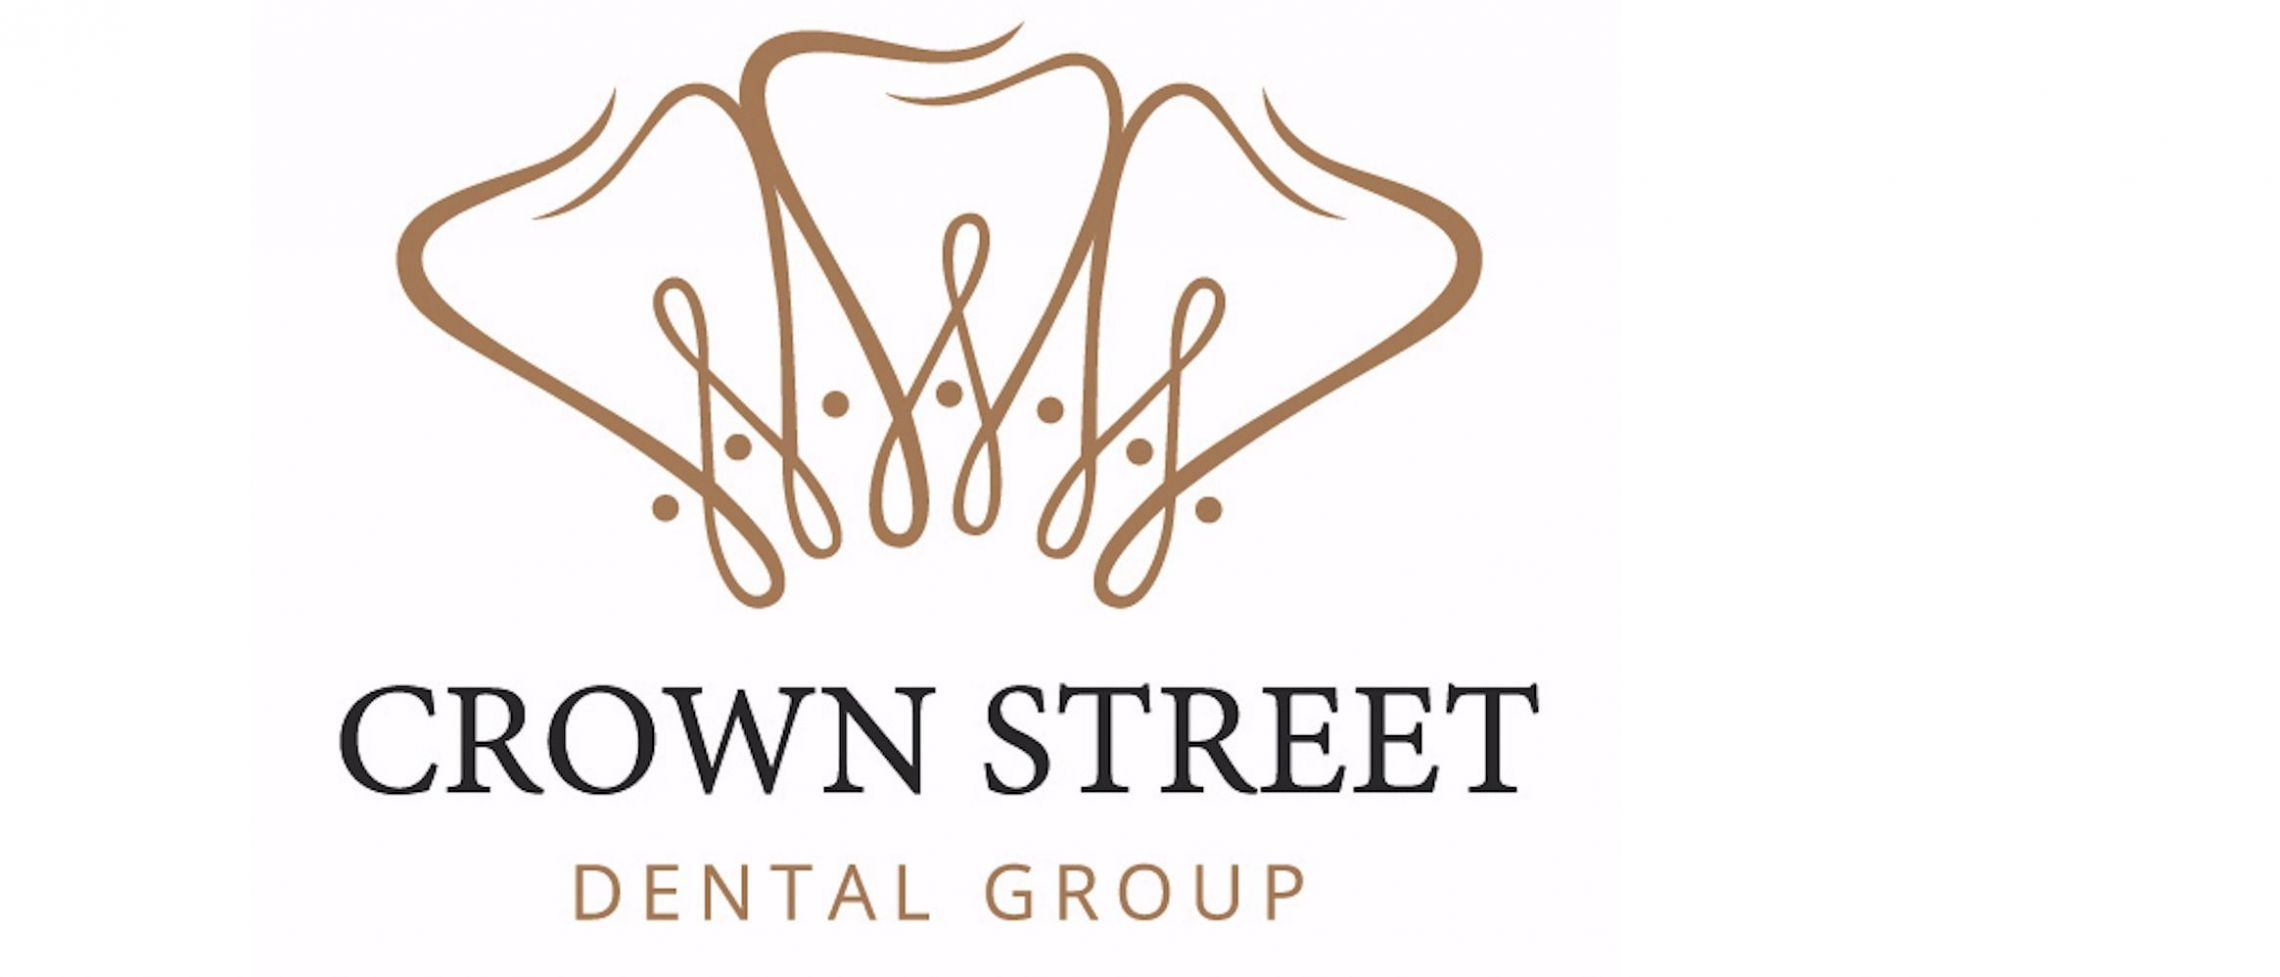 Crown Street Dental - The MiSmile Network